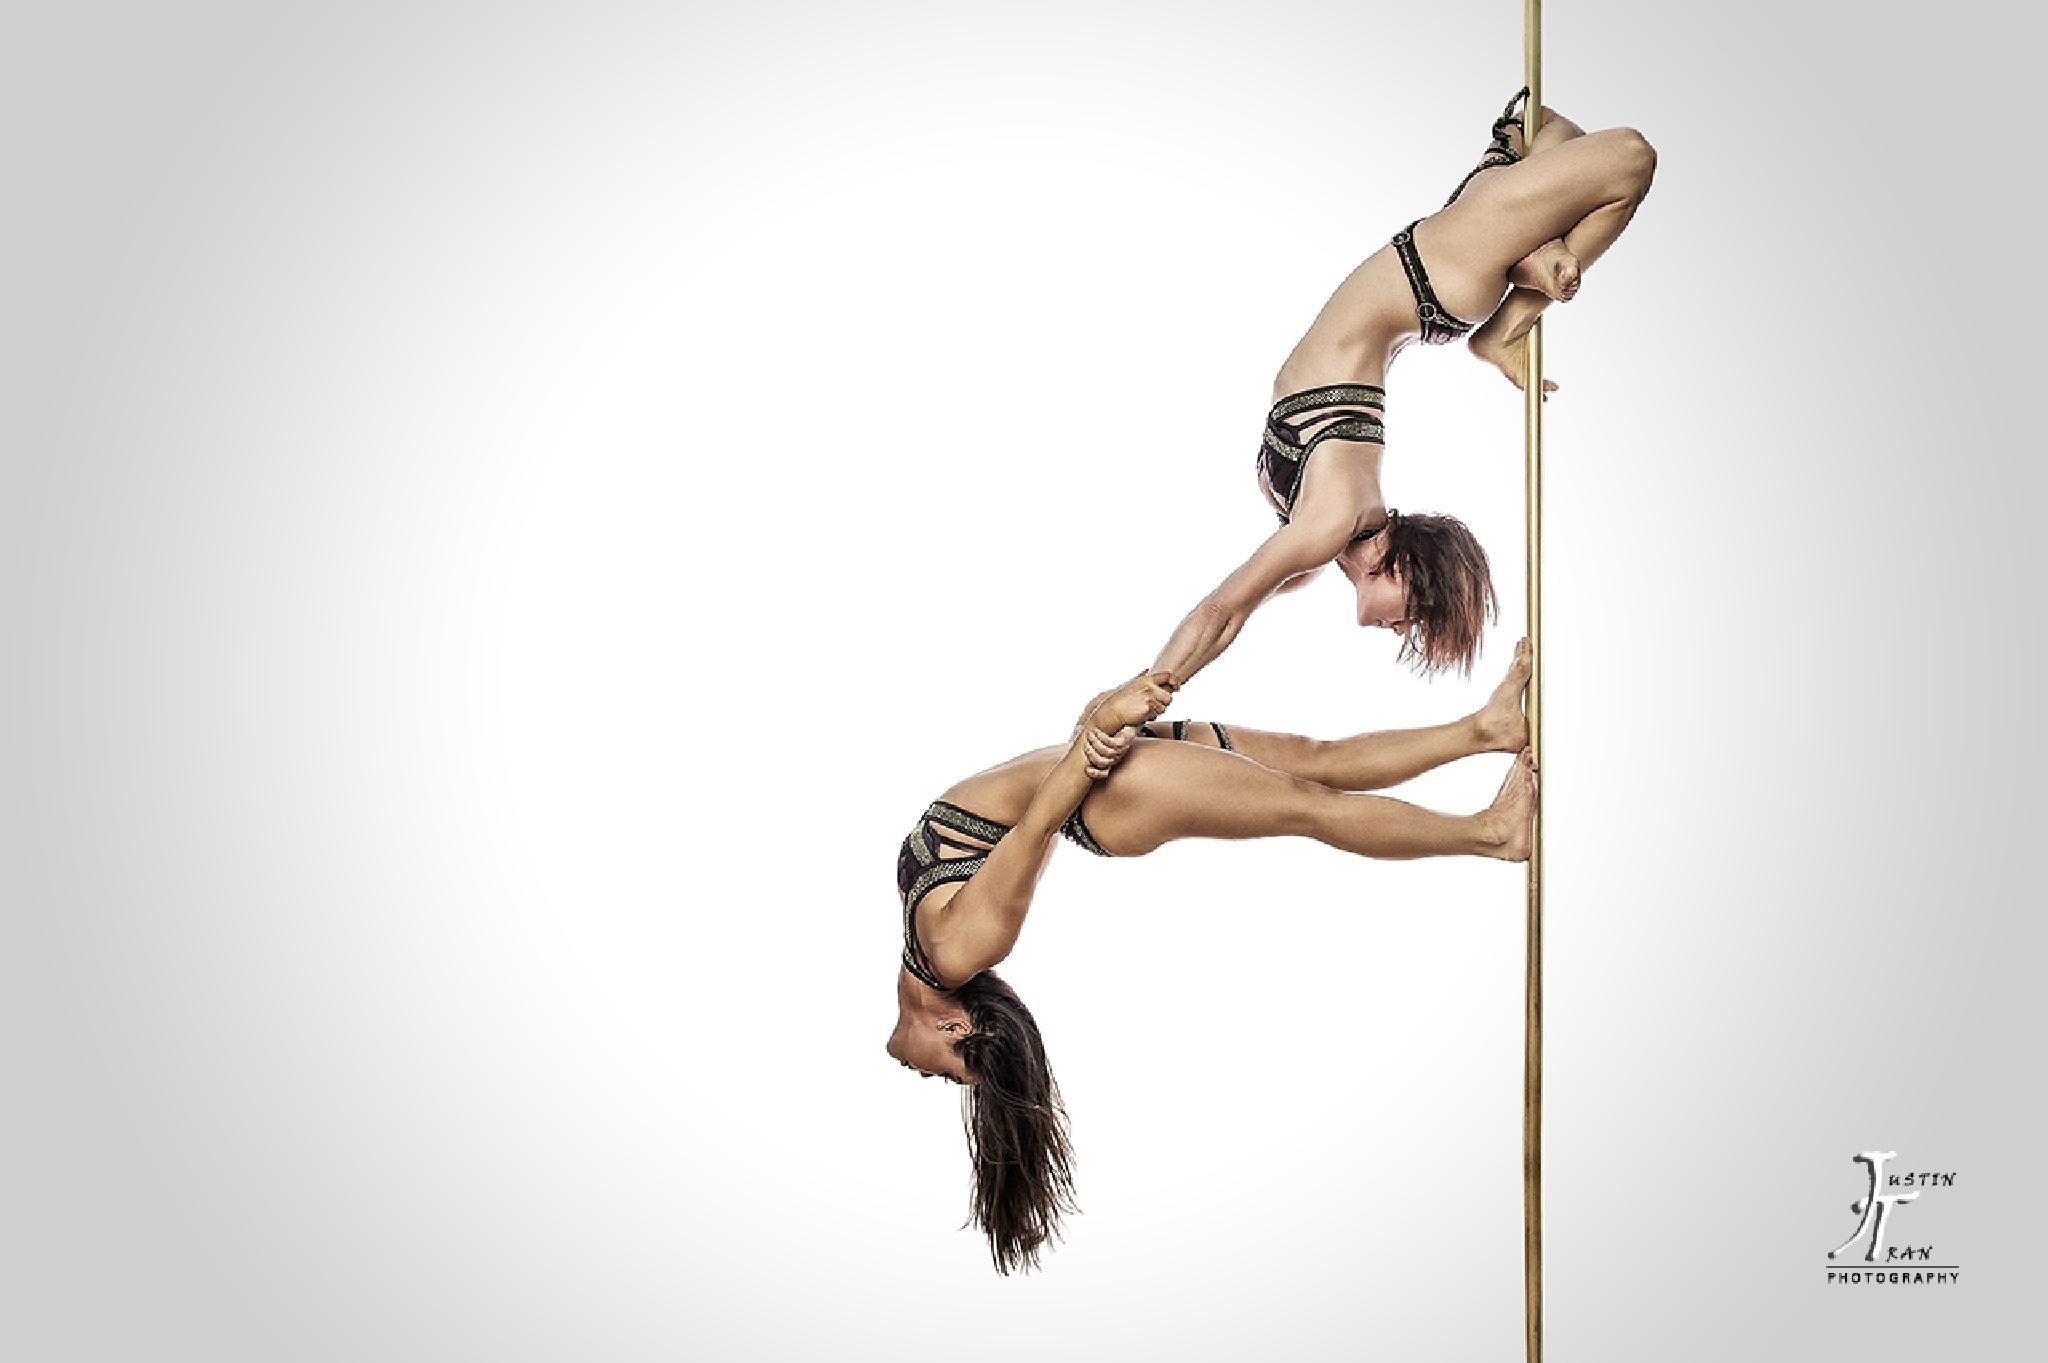 Photo in Sports #pole dance #pole dancing #pole dancers #doubles #justin tran #justin tran photography #sports #athletics #strength #flexible #models #wowom #women